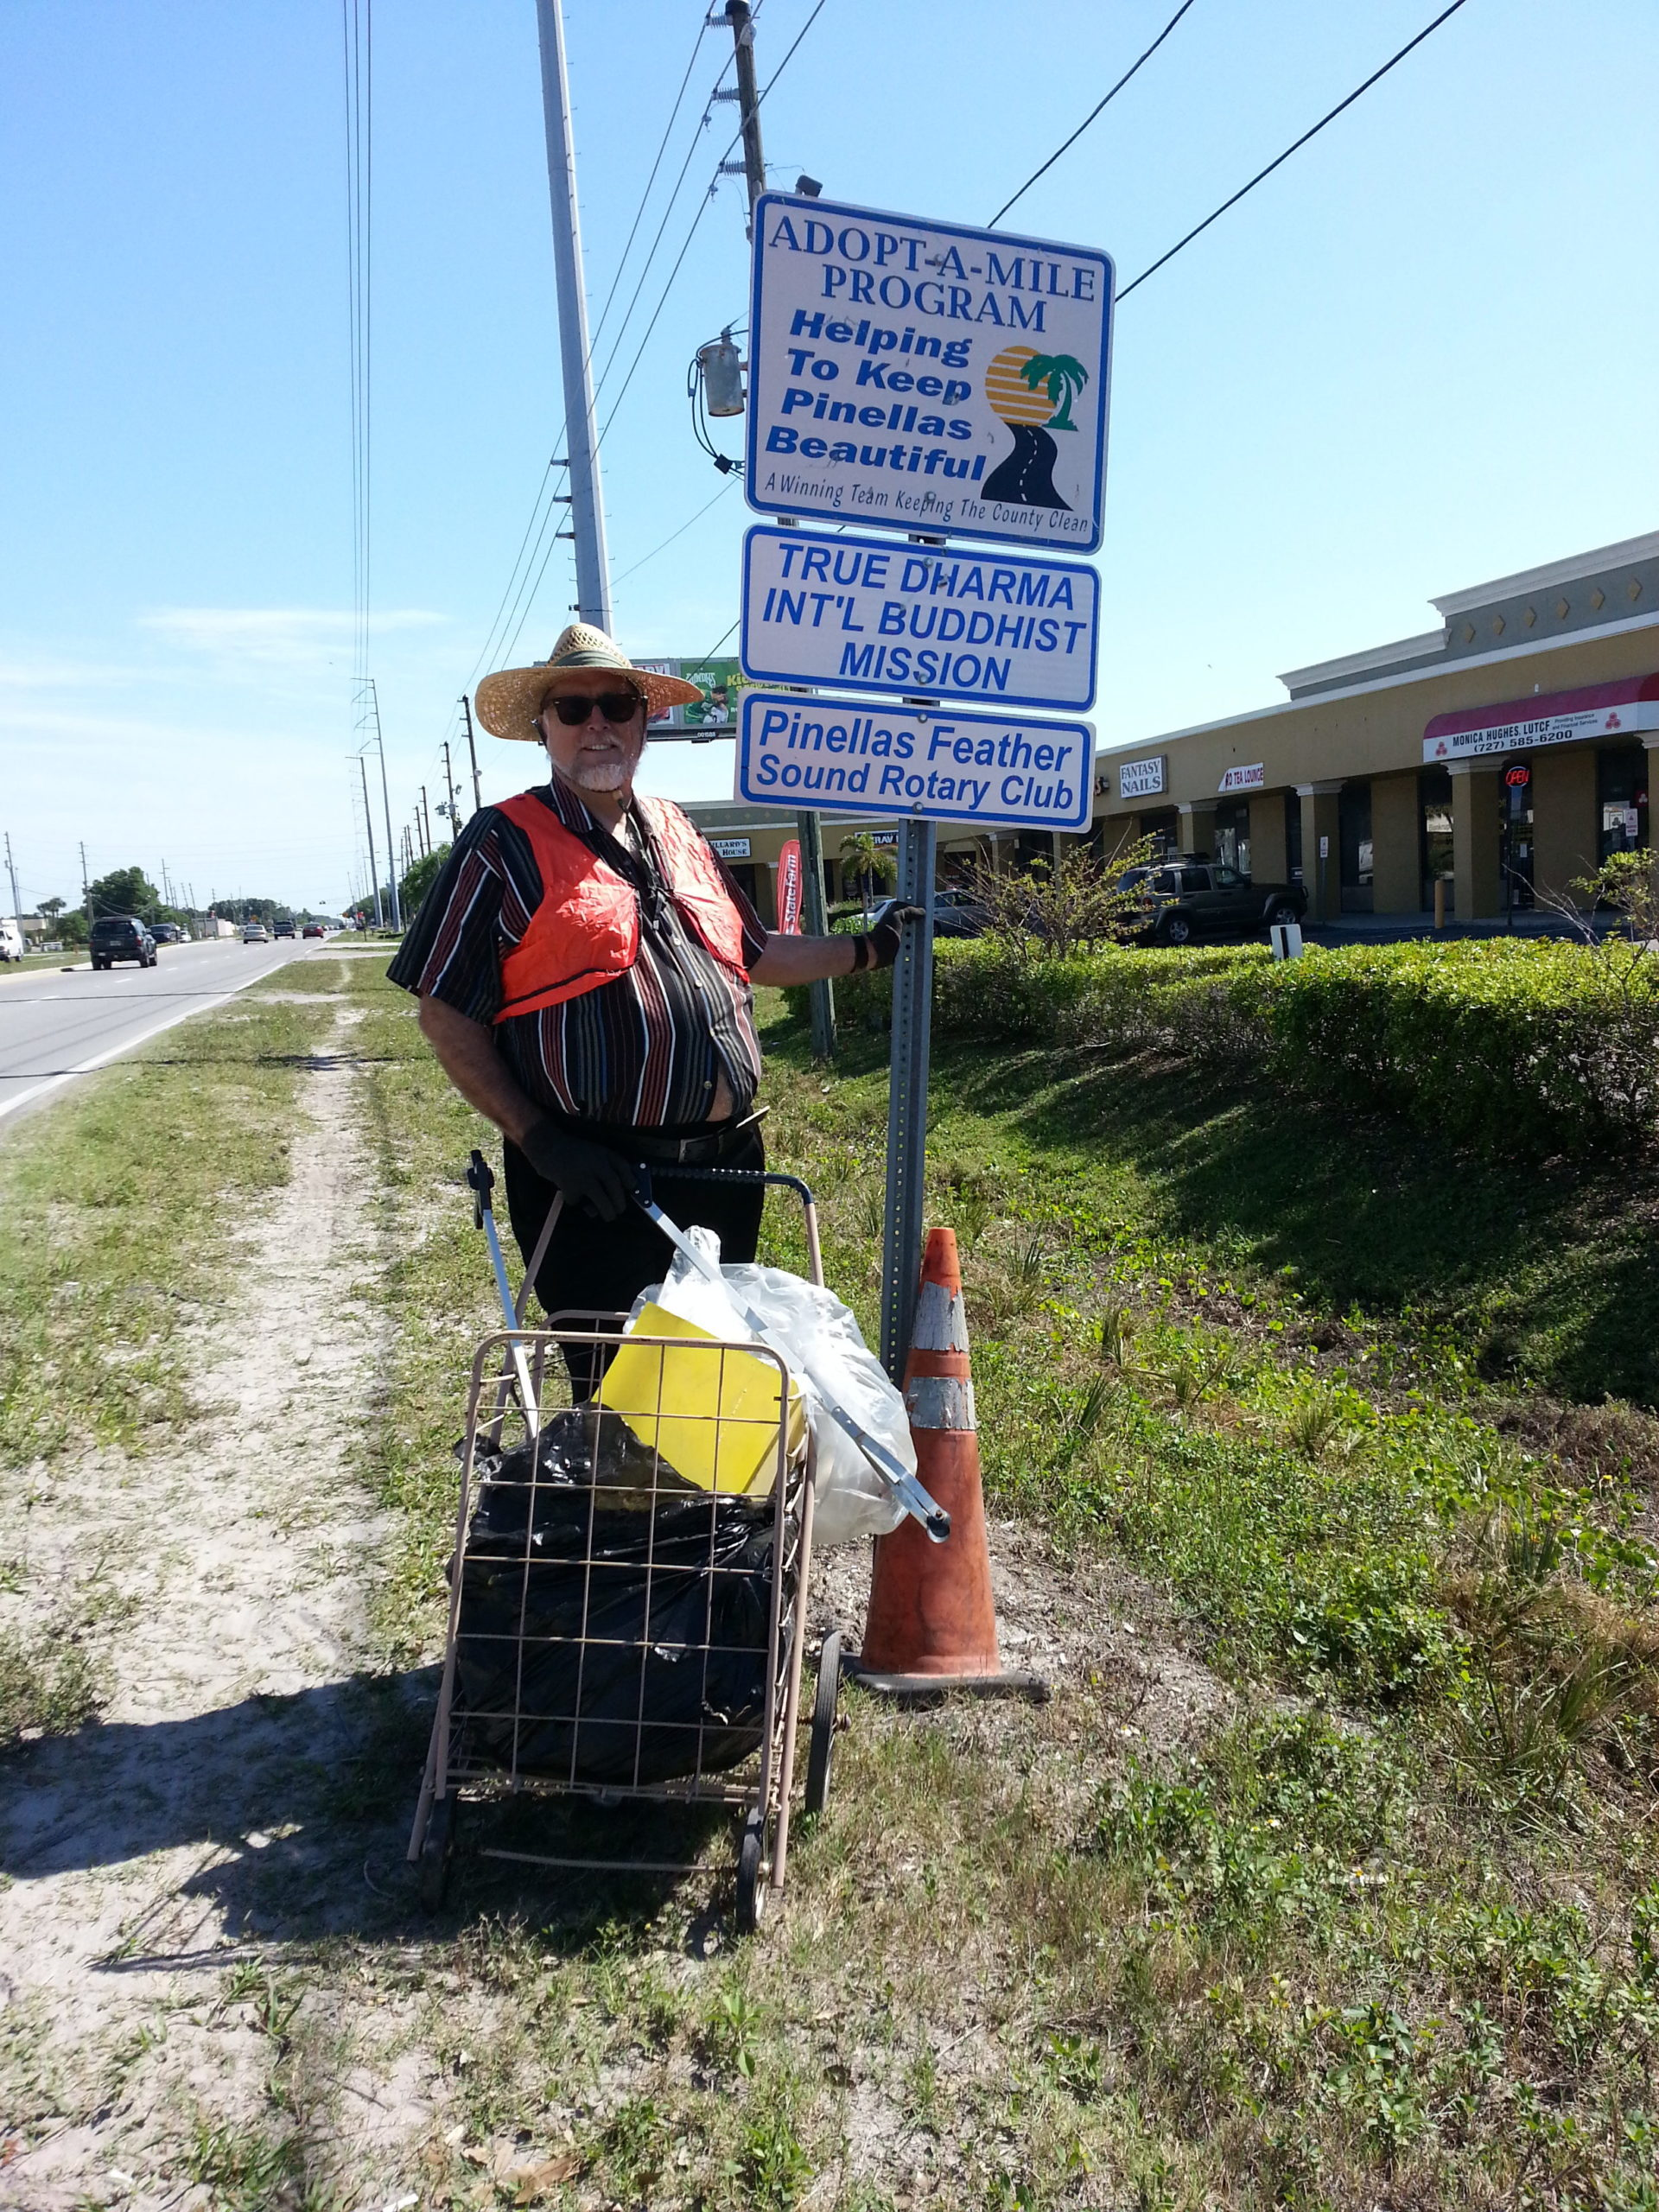 Community Activist Jay Alexander does volunteer road clean-up with True Dharma